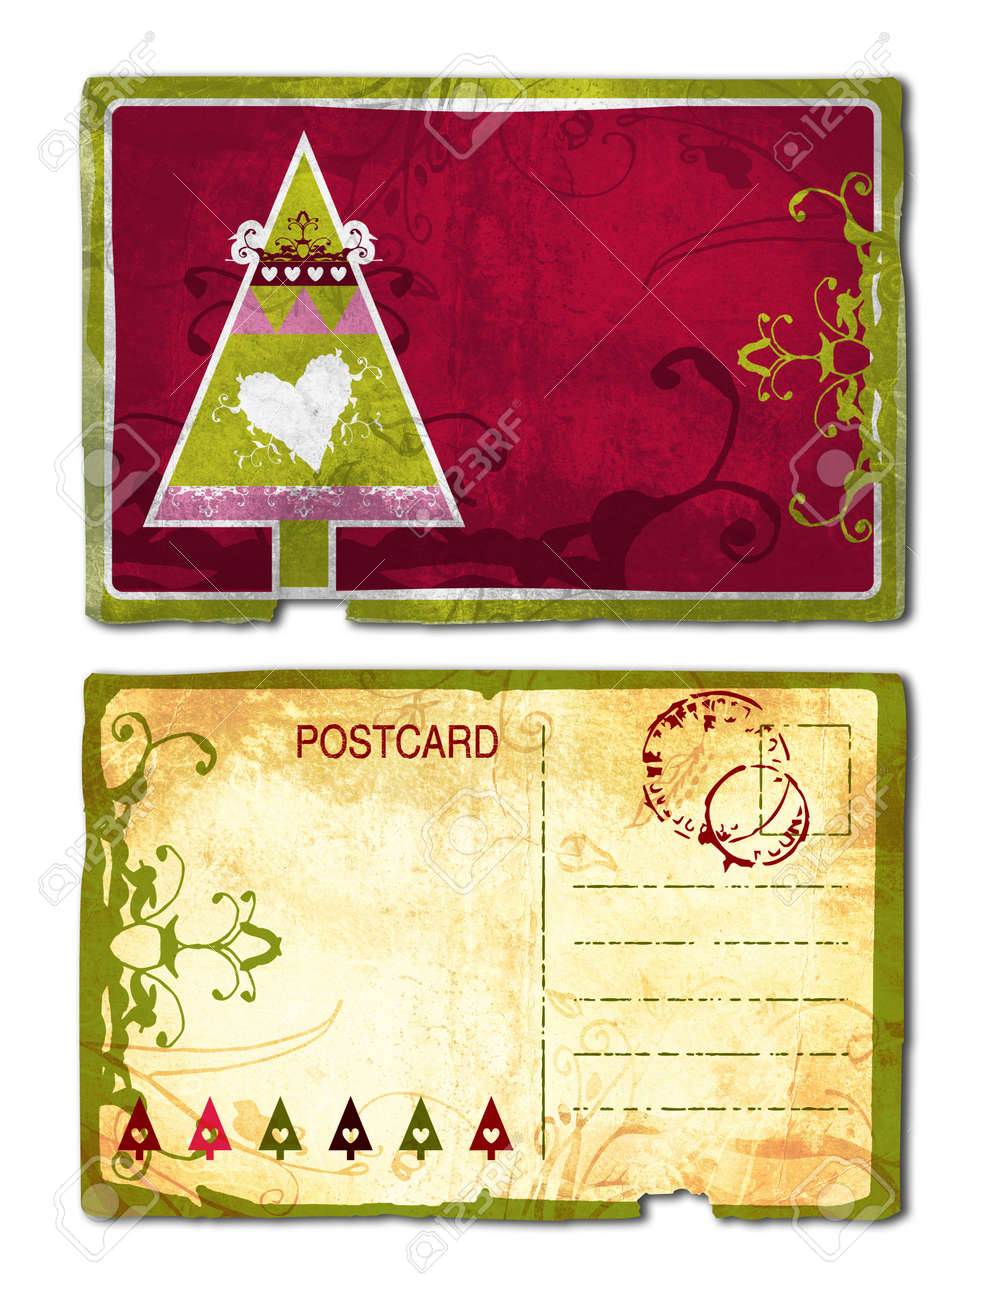 Grunge Postcard Front And Back With Christmas Tree And Heart